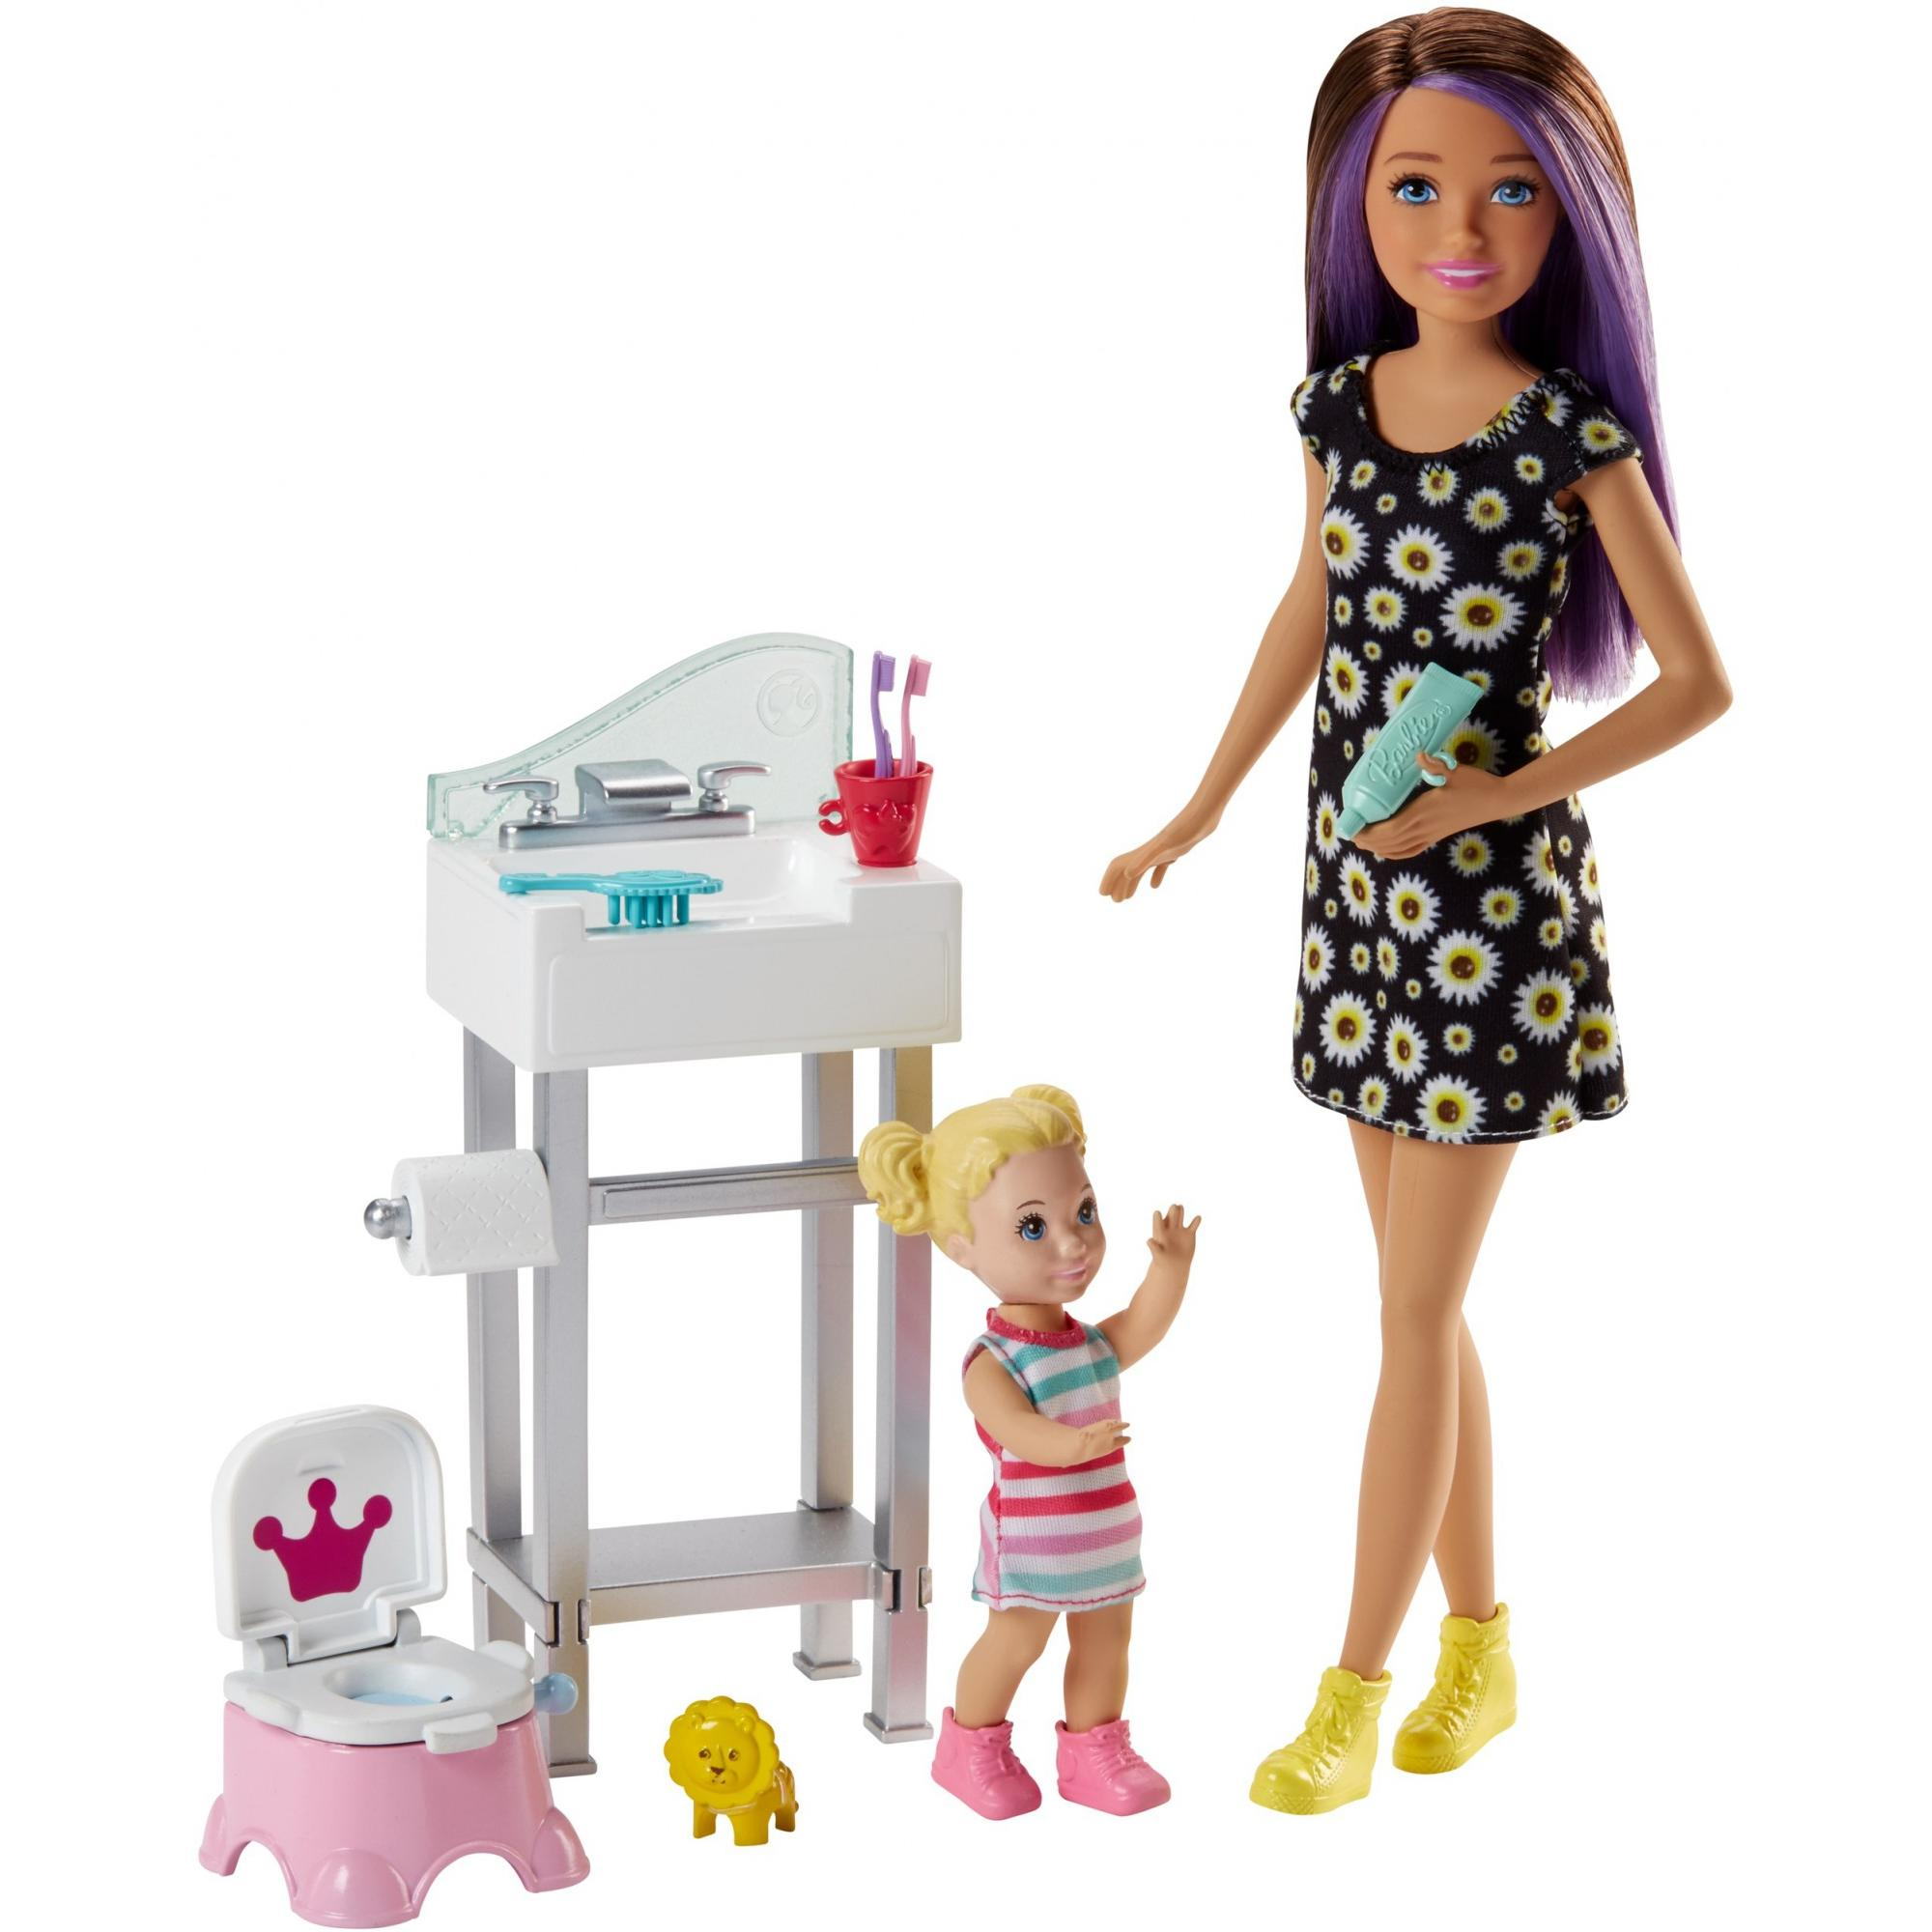 Barbie Skipper Babysitters Inc. Potty Training Playset and Doll